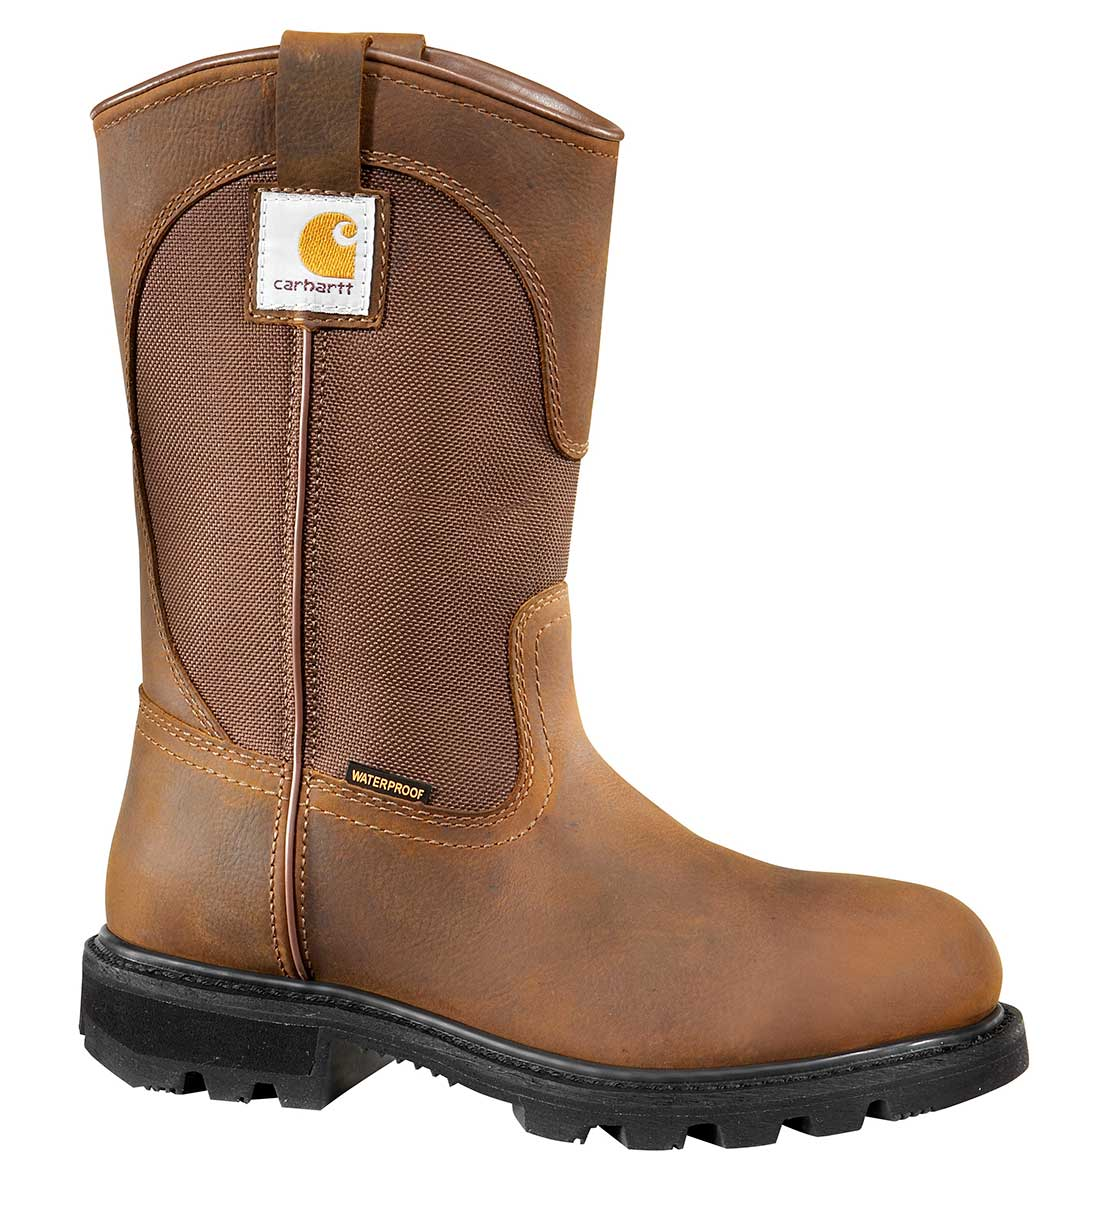 Carhartt Traditional Womens Brn Leather/Brn Fabric Lug Bottom Waterproof Soft Toe 10-inch Work Wellington